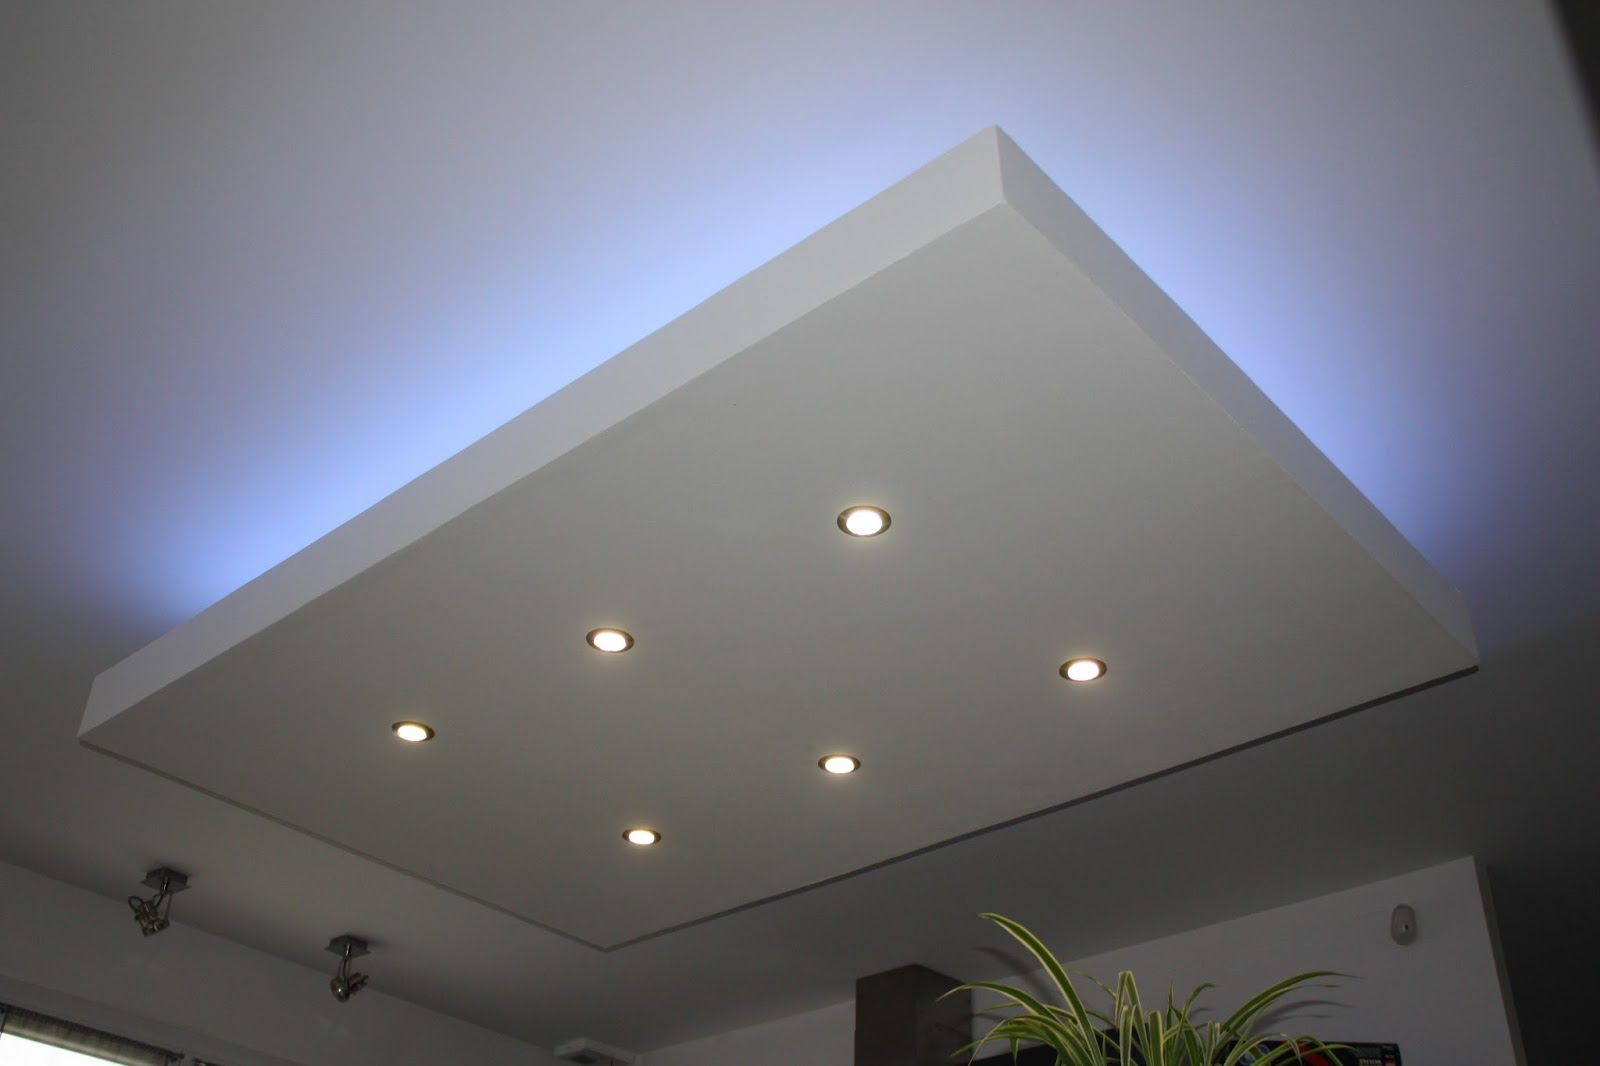 Eclairage Plafonnier Led Nouvel Article Eclairage Led Indirect Sur Faux Plafond